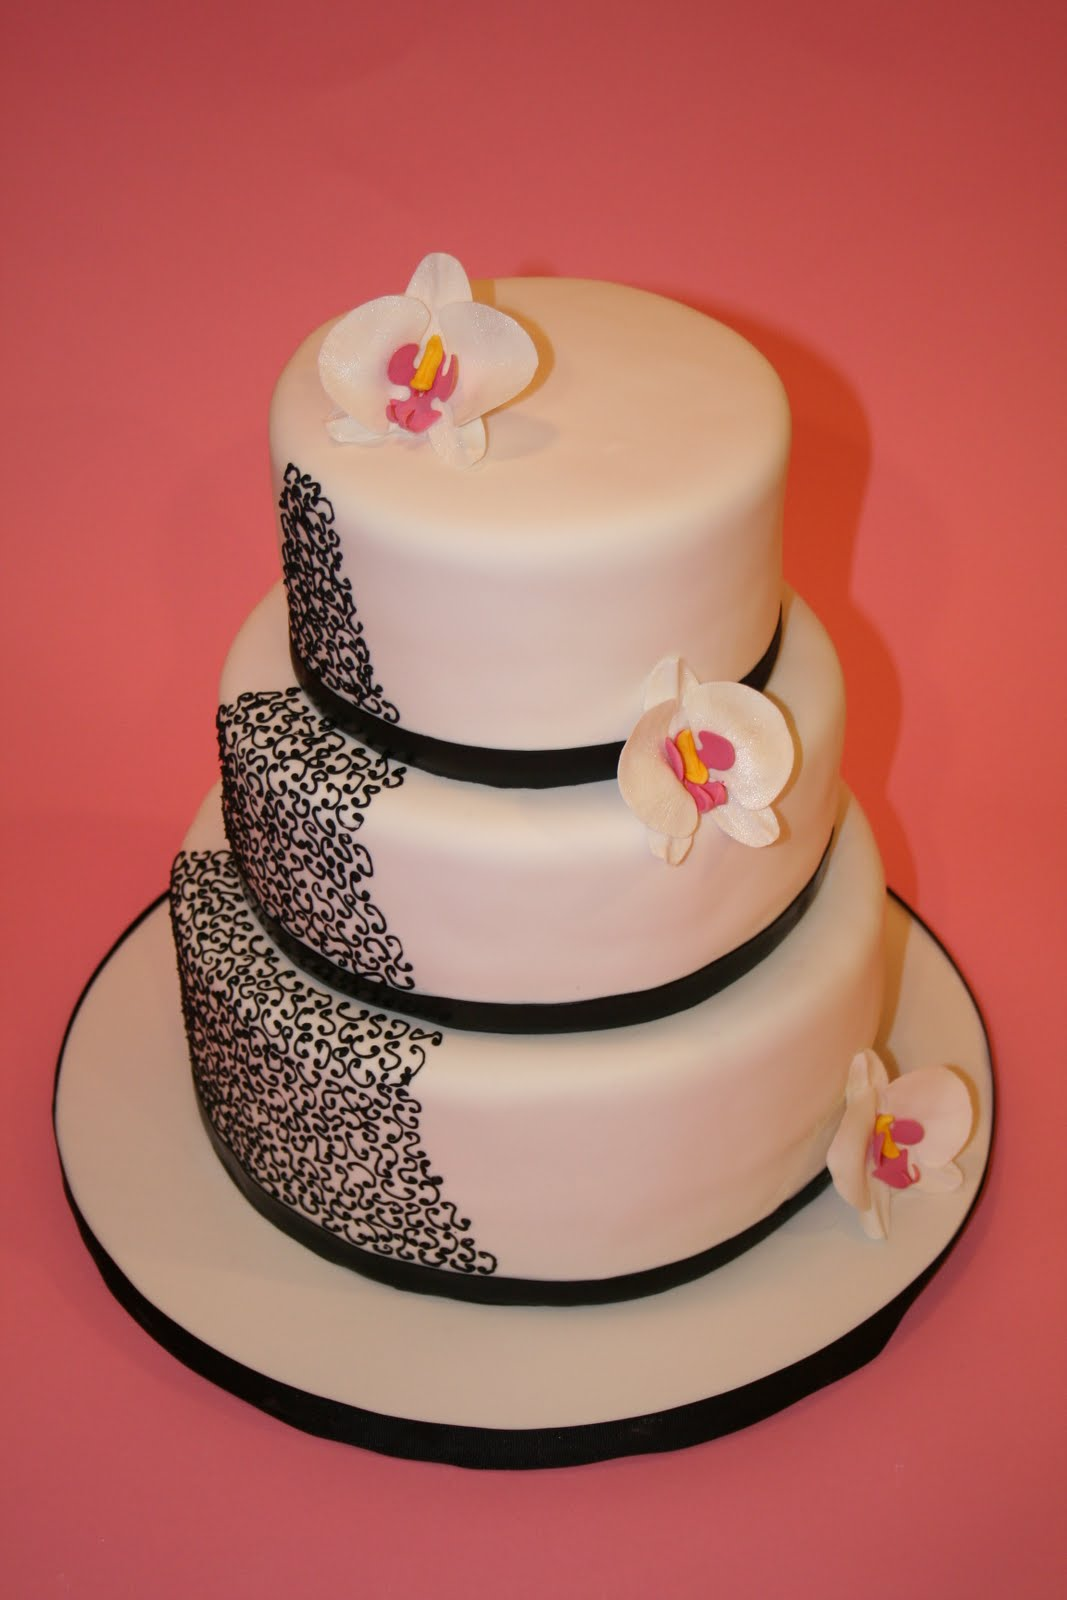 New Design For Wedding Cake : Sweet Grace, Cake Designs: June 2010